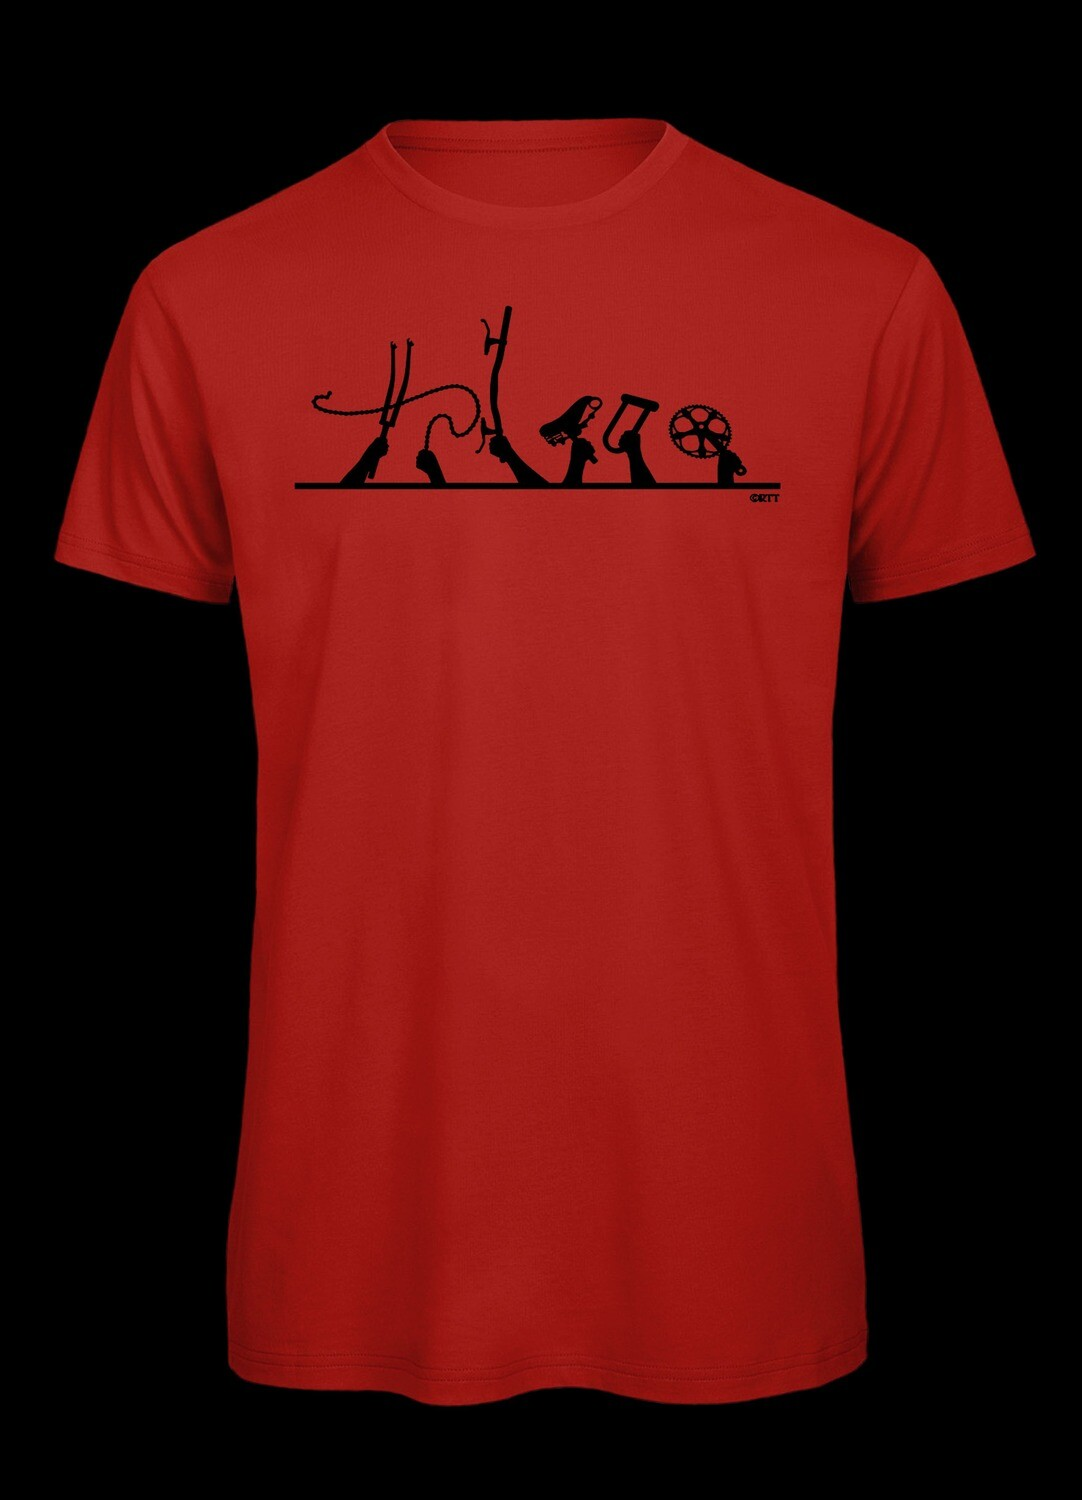 Critical Mass T-Shirt for cyclists